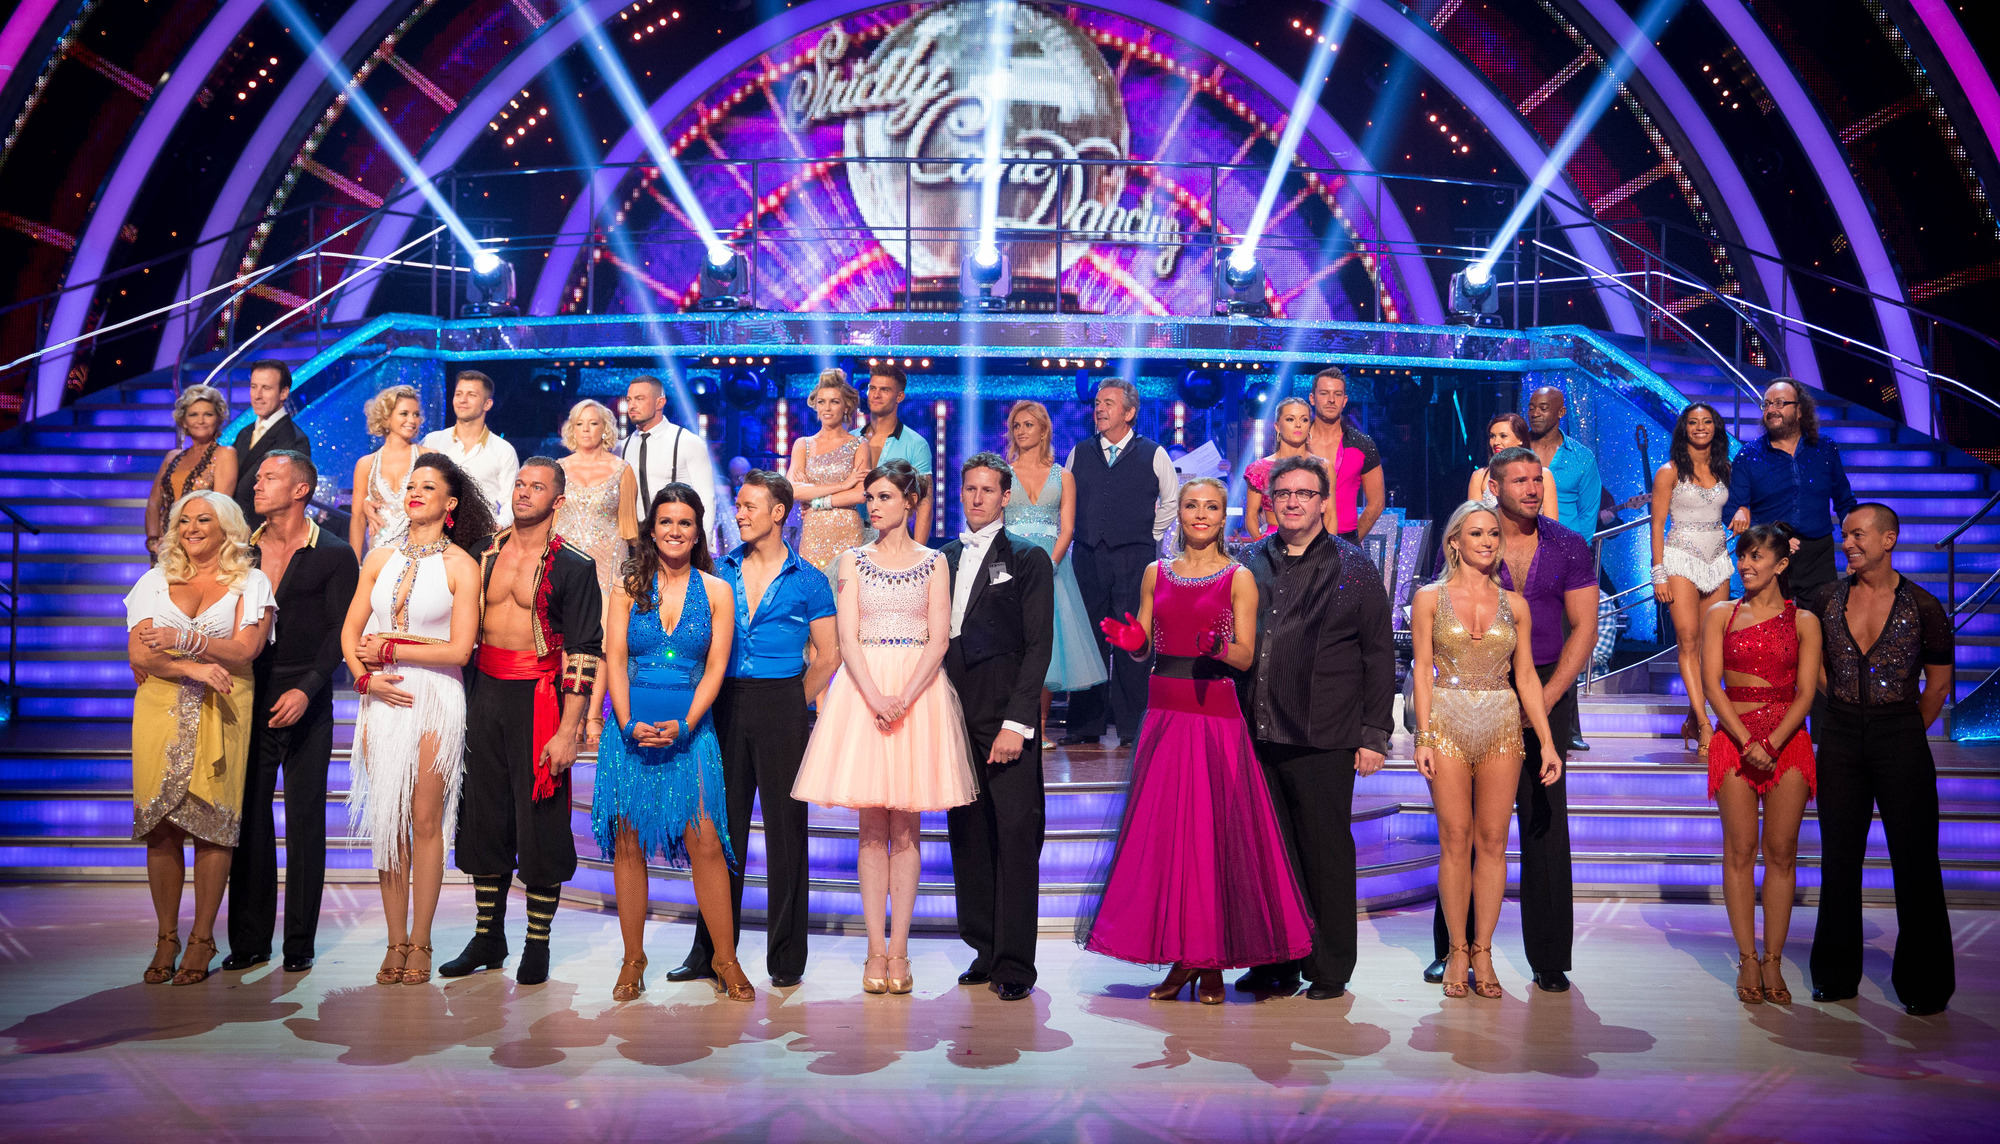 Contestants and Professional Dancers of Strictly Come Dancing 2013 - (C) BBC - Photographer: Guy Levy